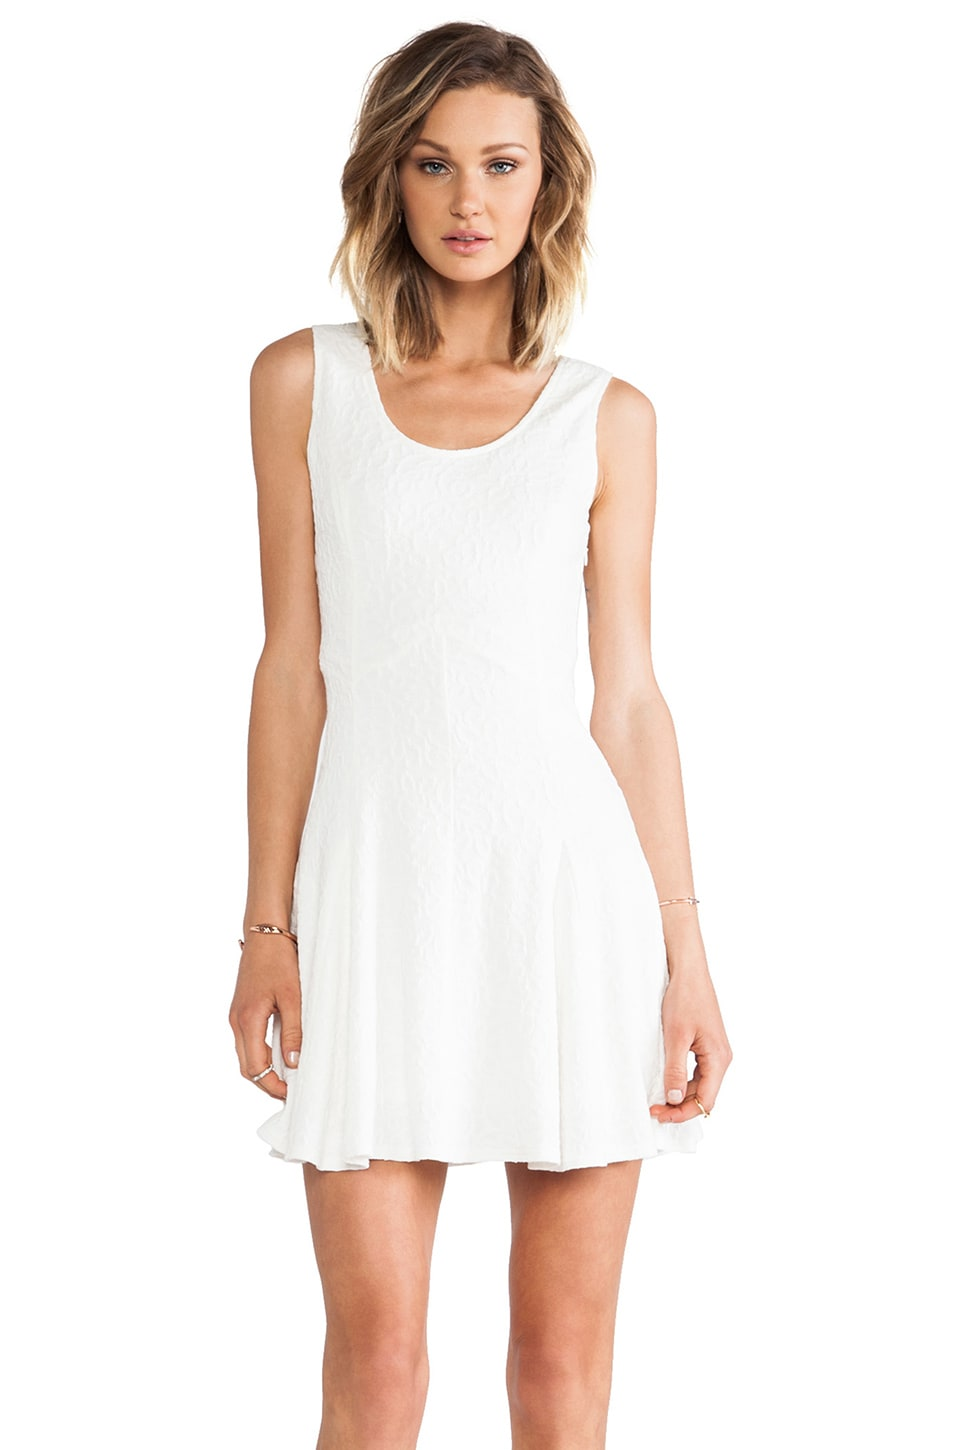 MM Couture by Miss Me Lace Fit and Flare Dress in White